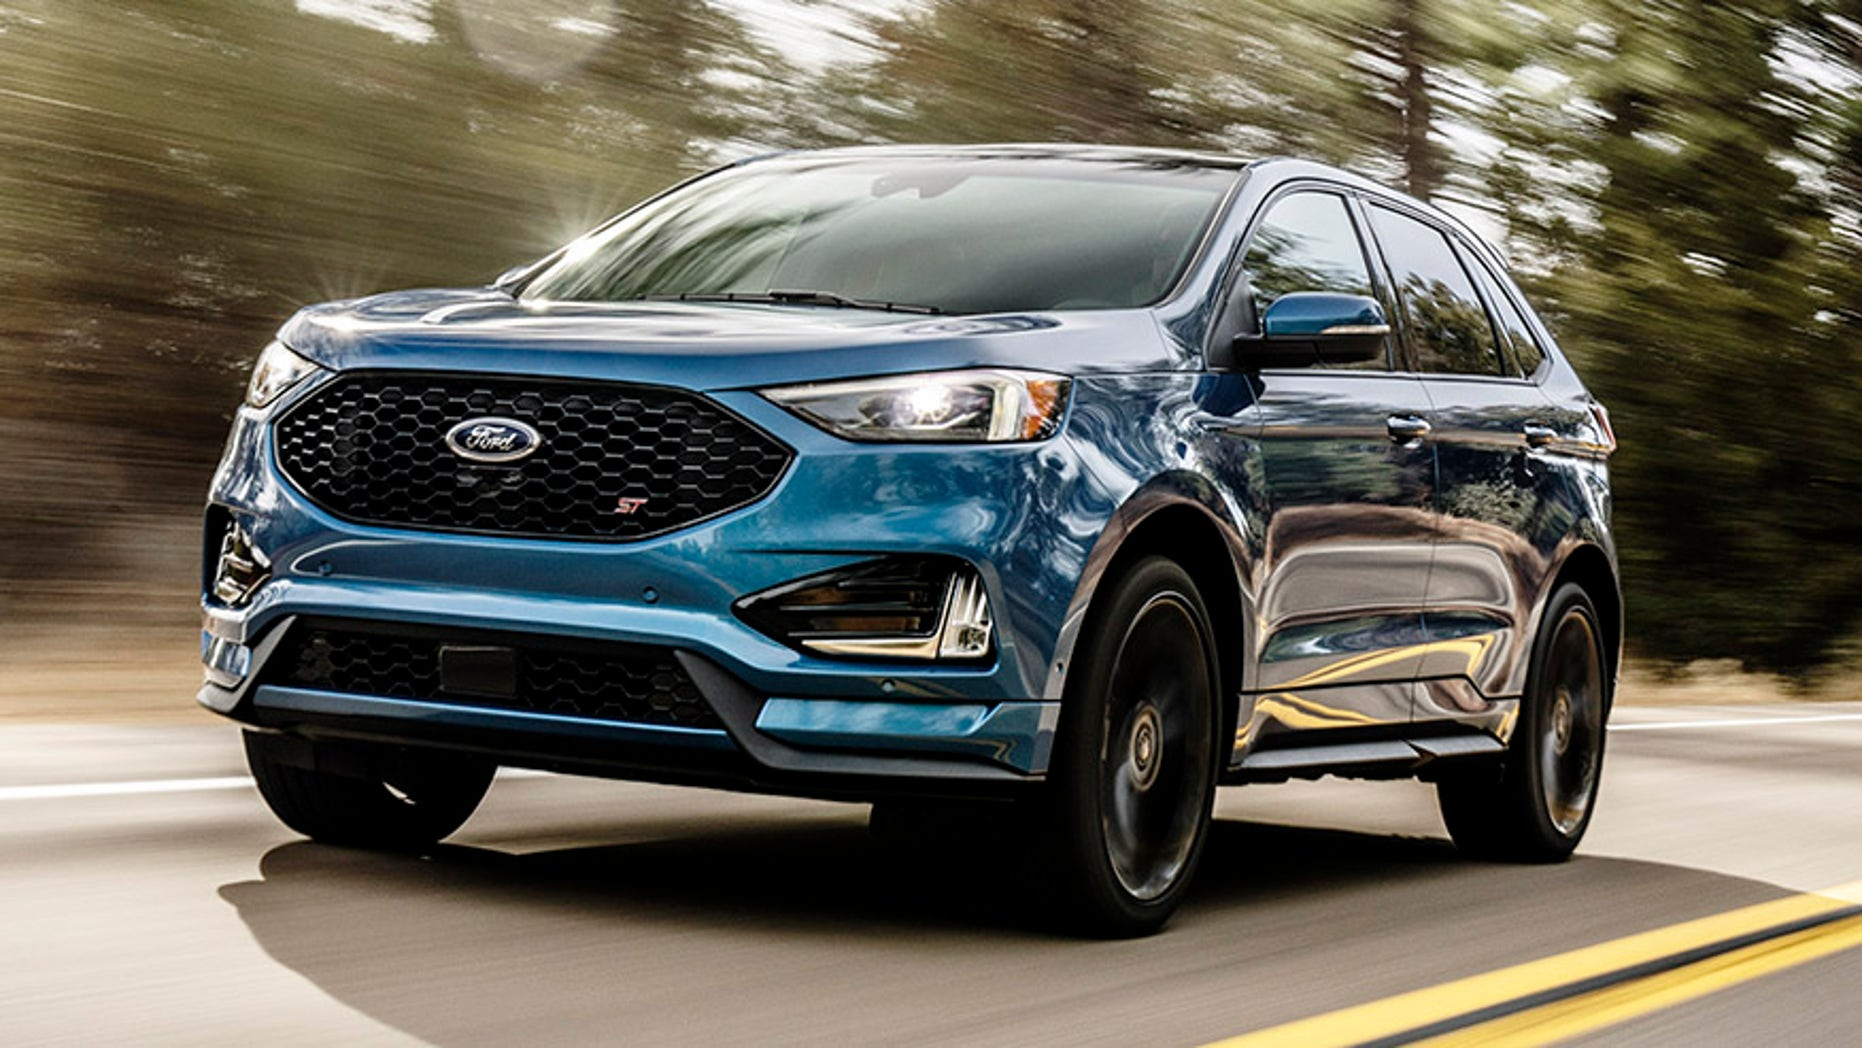 Detroit Auto Show Ford Enters Performance Suv Segment With Edge St